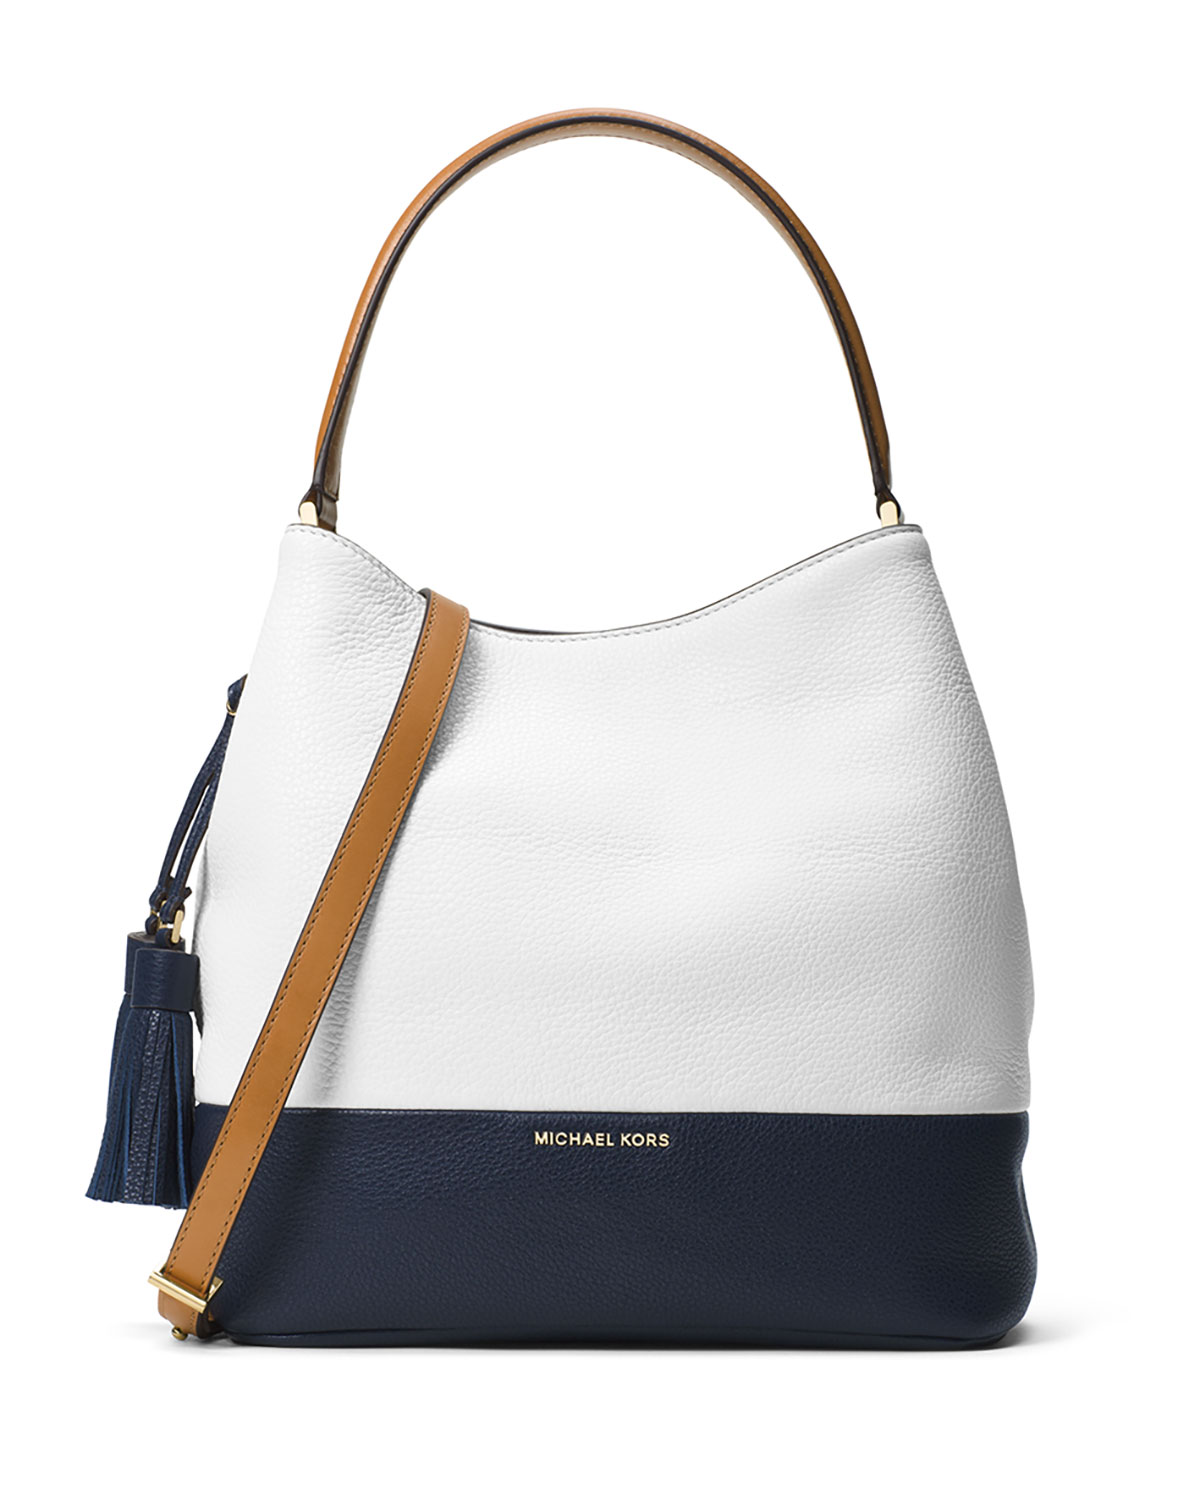 41601bd7f7f2 MICHAEL Michael Kors Kip Large Colorblock Leather Bucket Bag, Optic  White/Admiral/Luggage